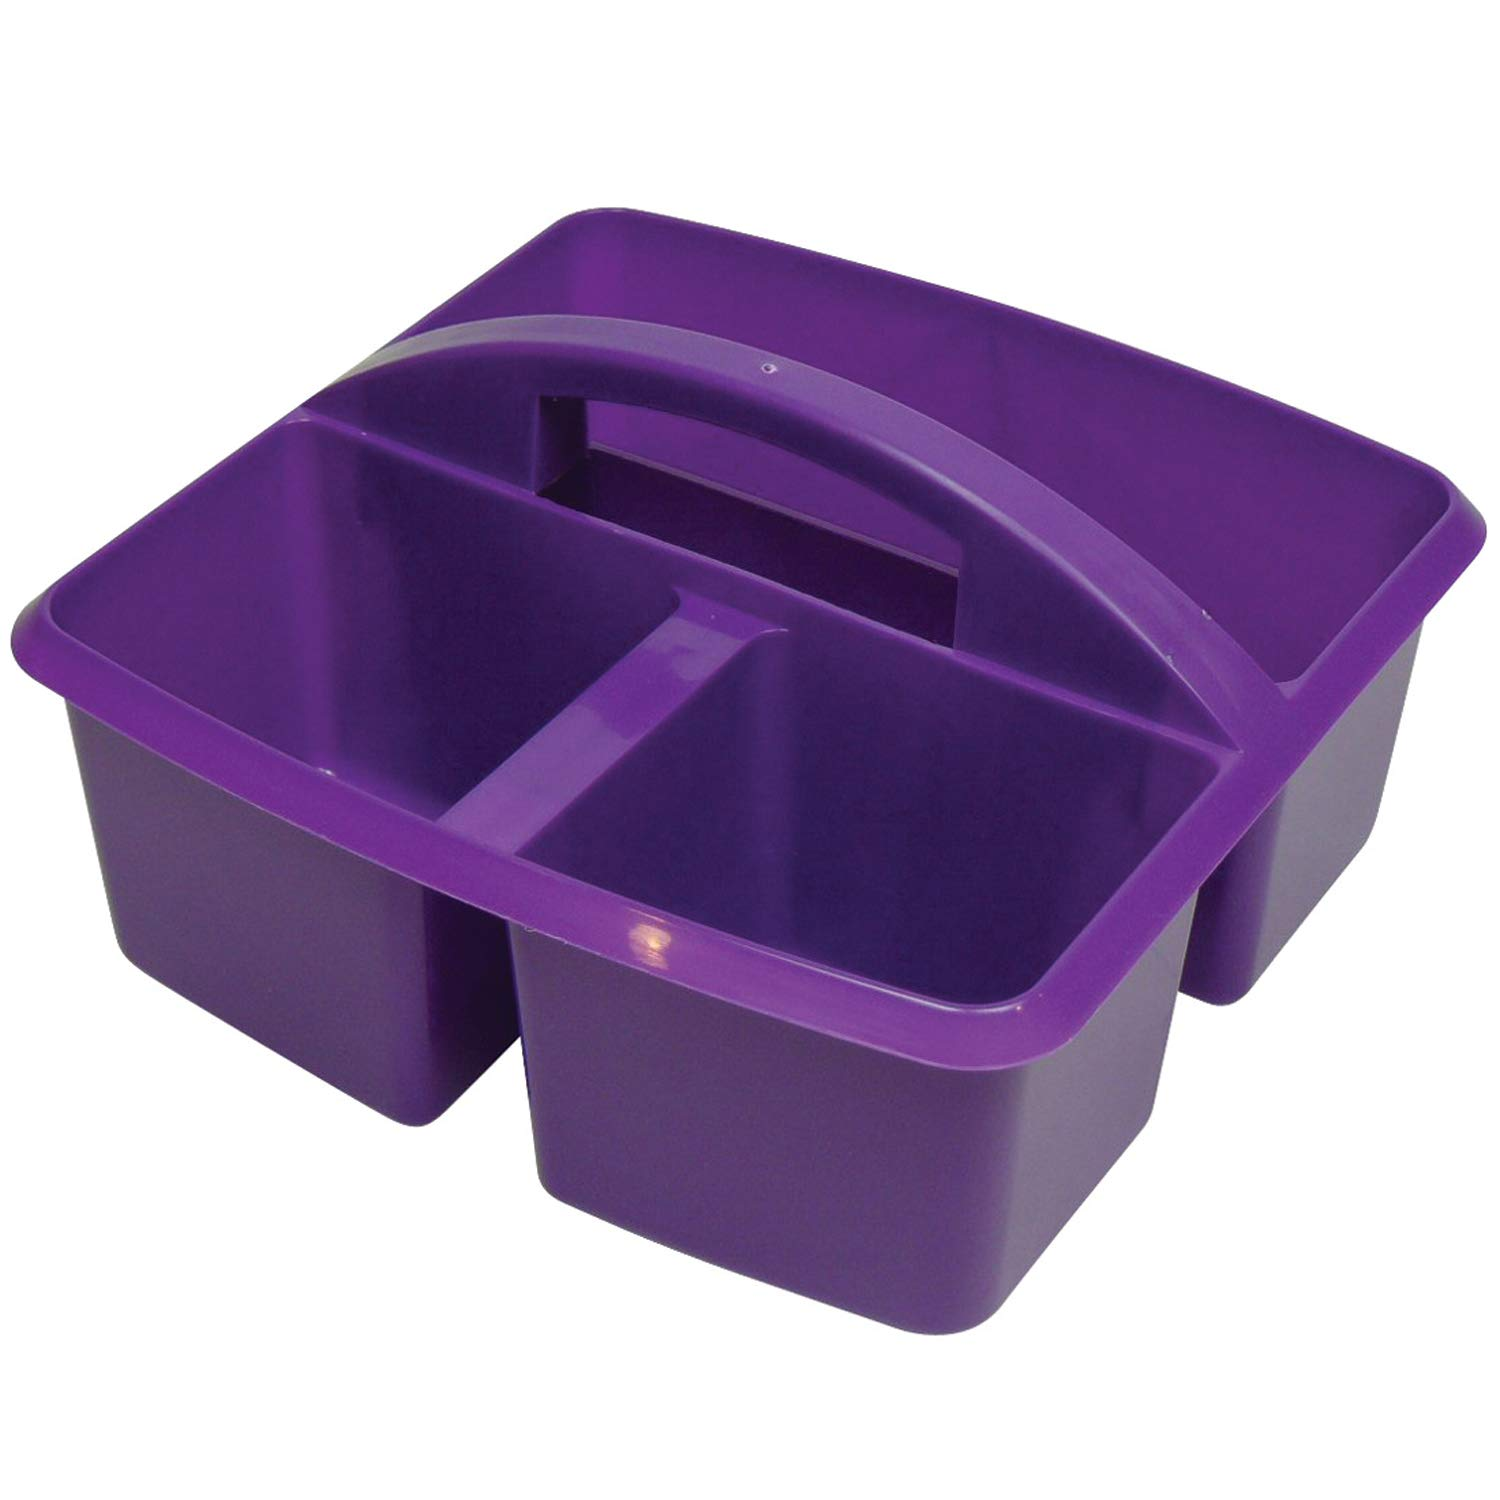 Romanoff Products ROM25906BN Small Utility Caddy, Purple, Pack of 6